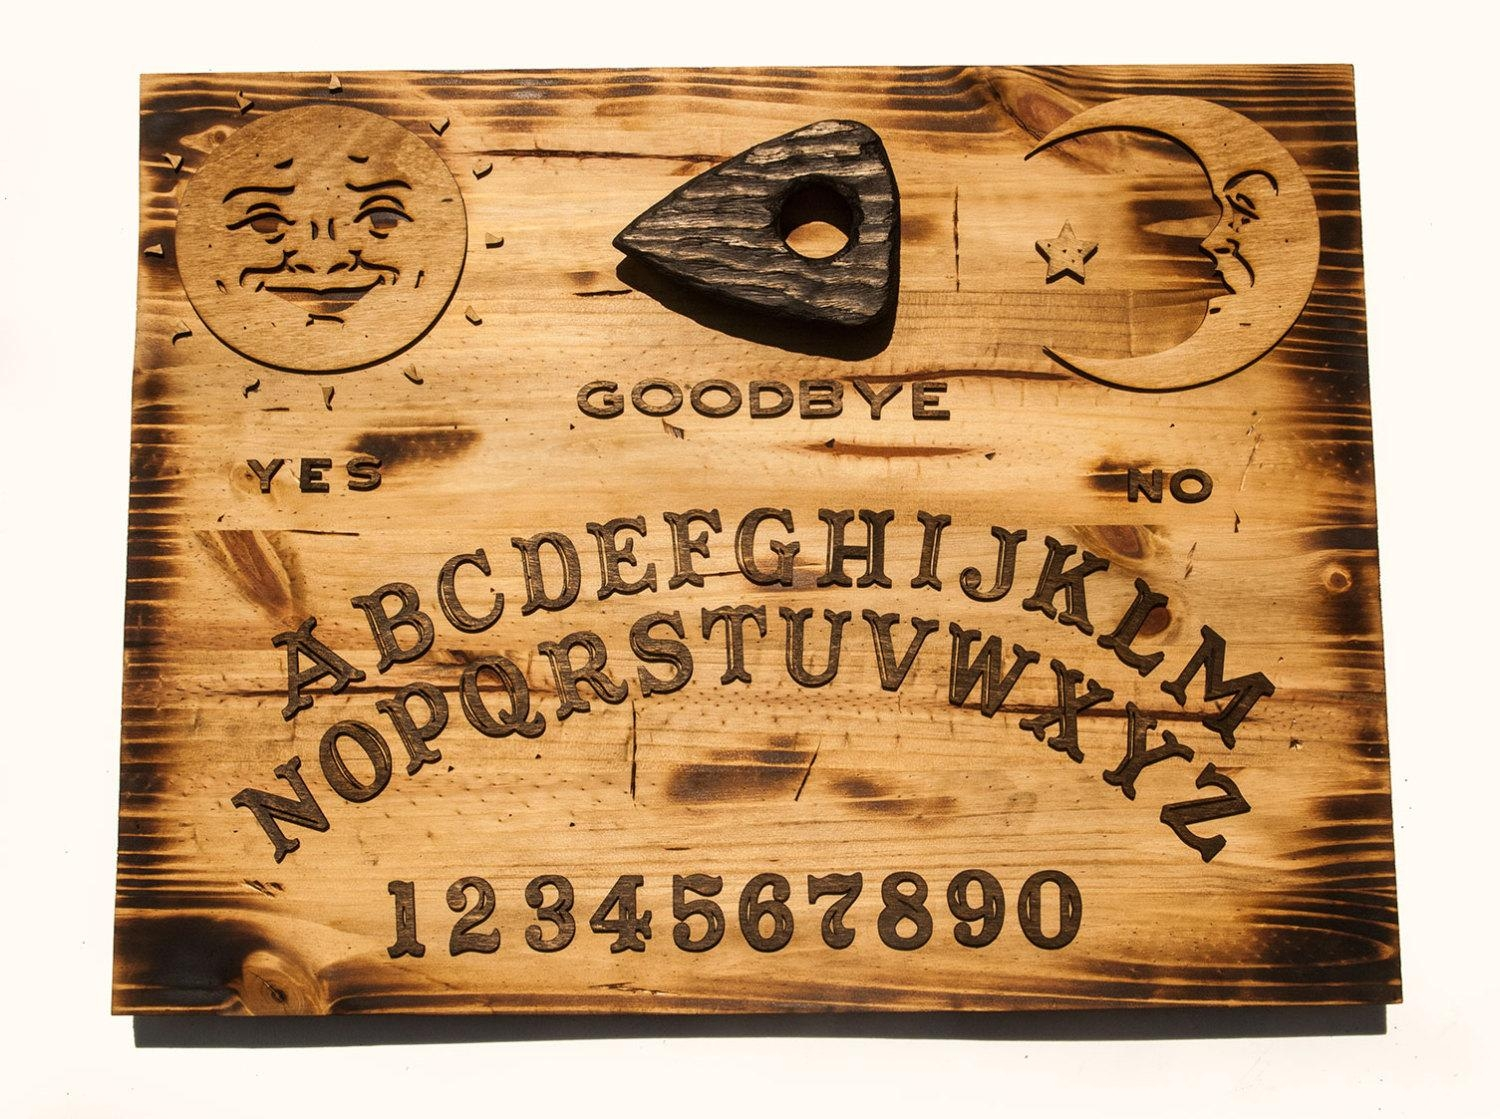 3D Sculptured Wall Hanging Wooden Ouija Board Art (View 2 of 20)